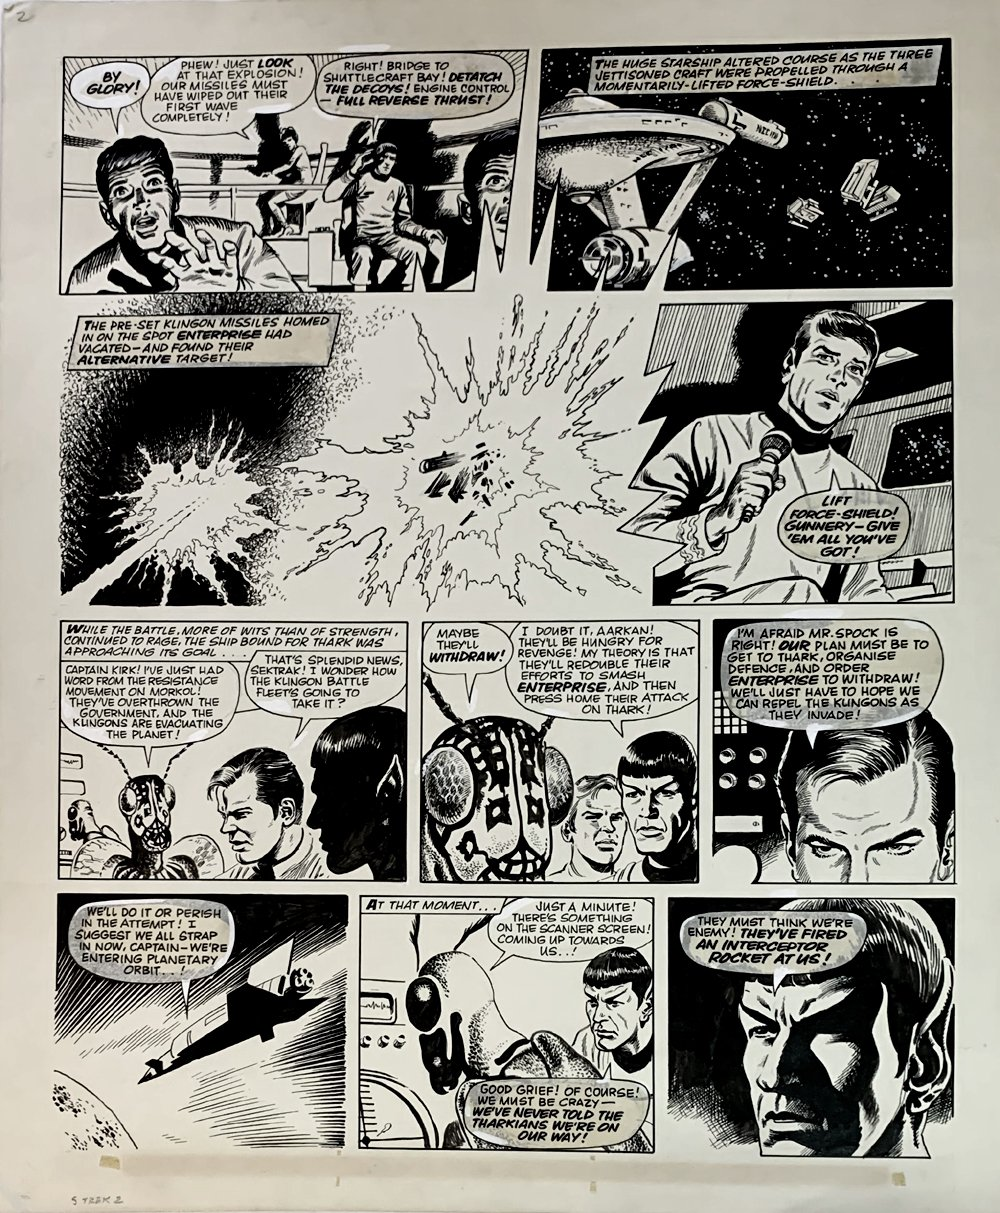 Star Trek Newspaper Strip 6-2-1973 (VERY LARGE)